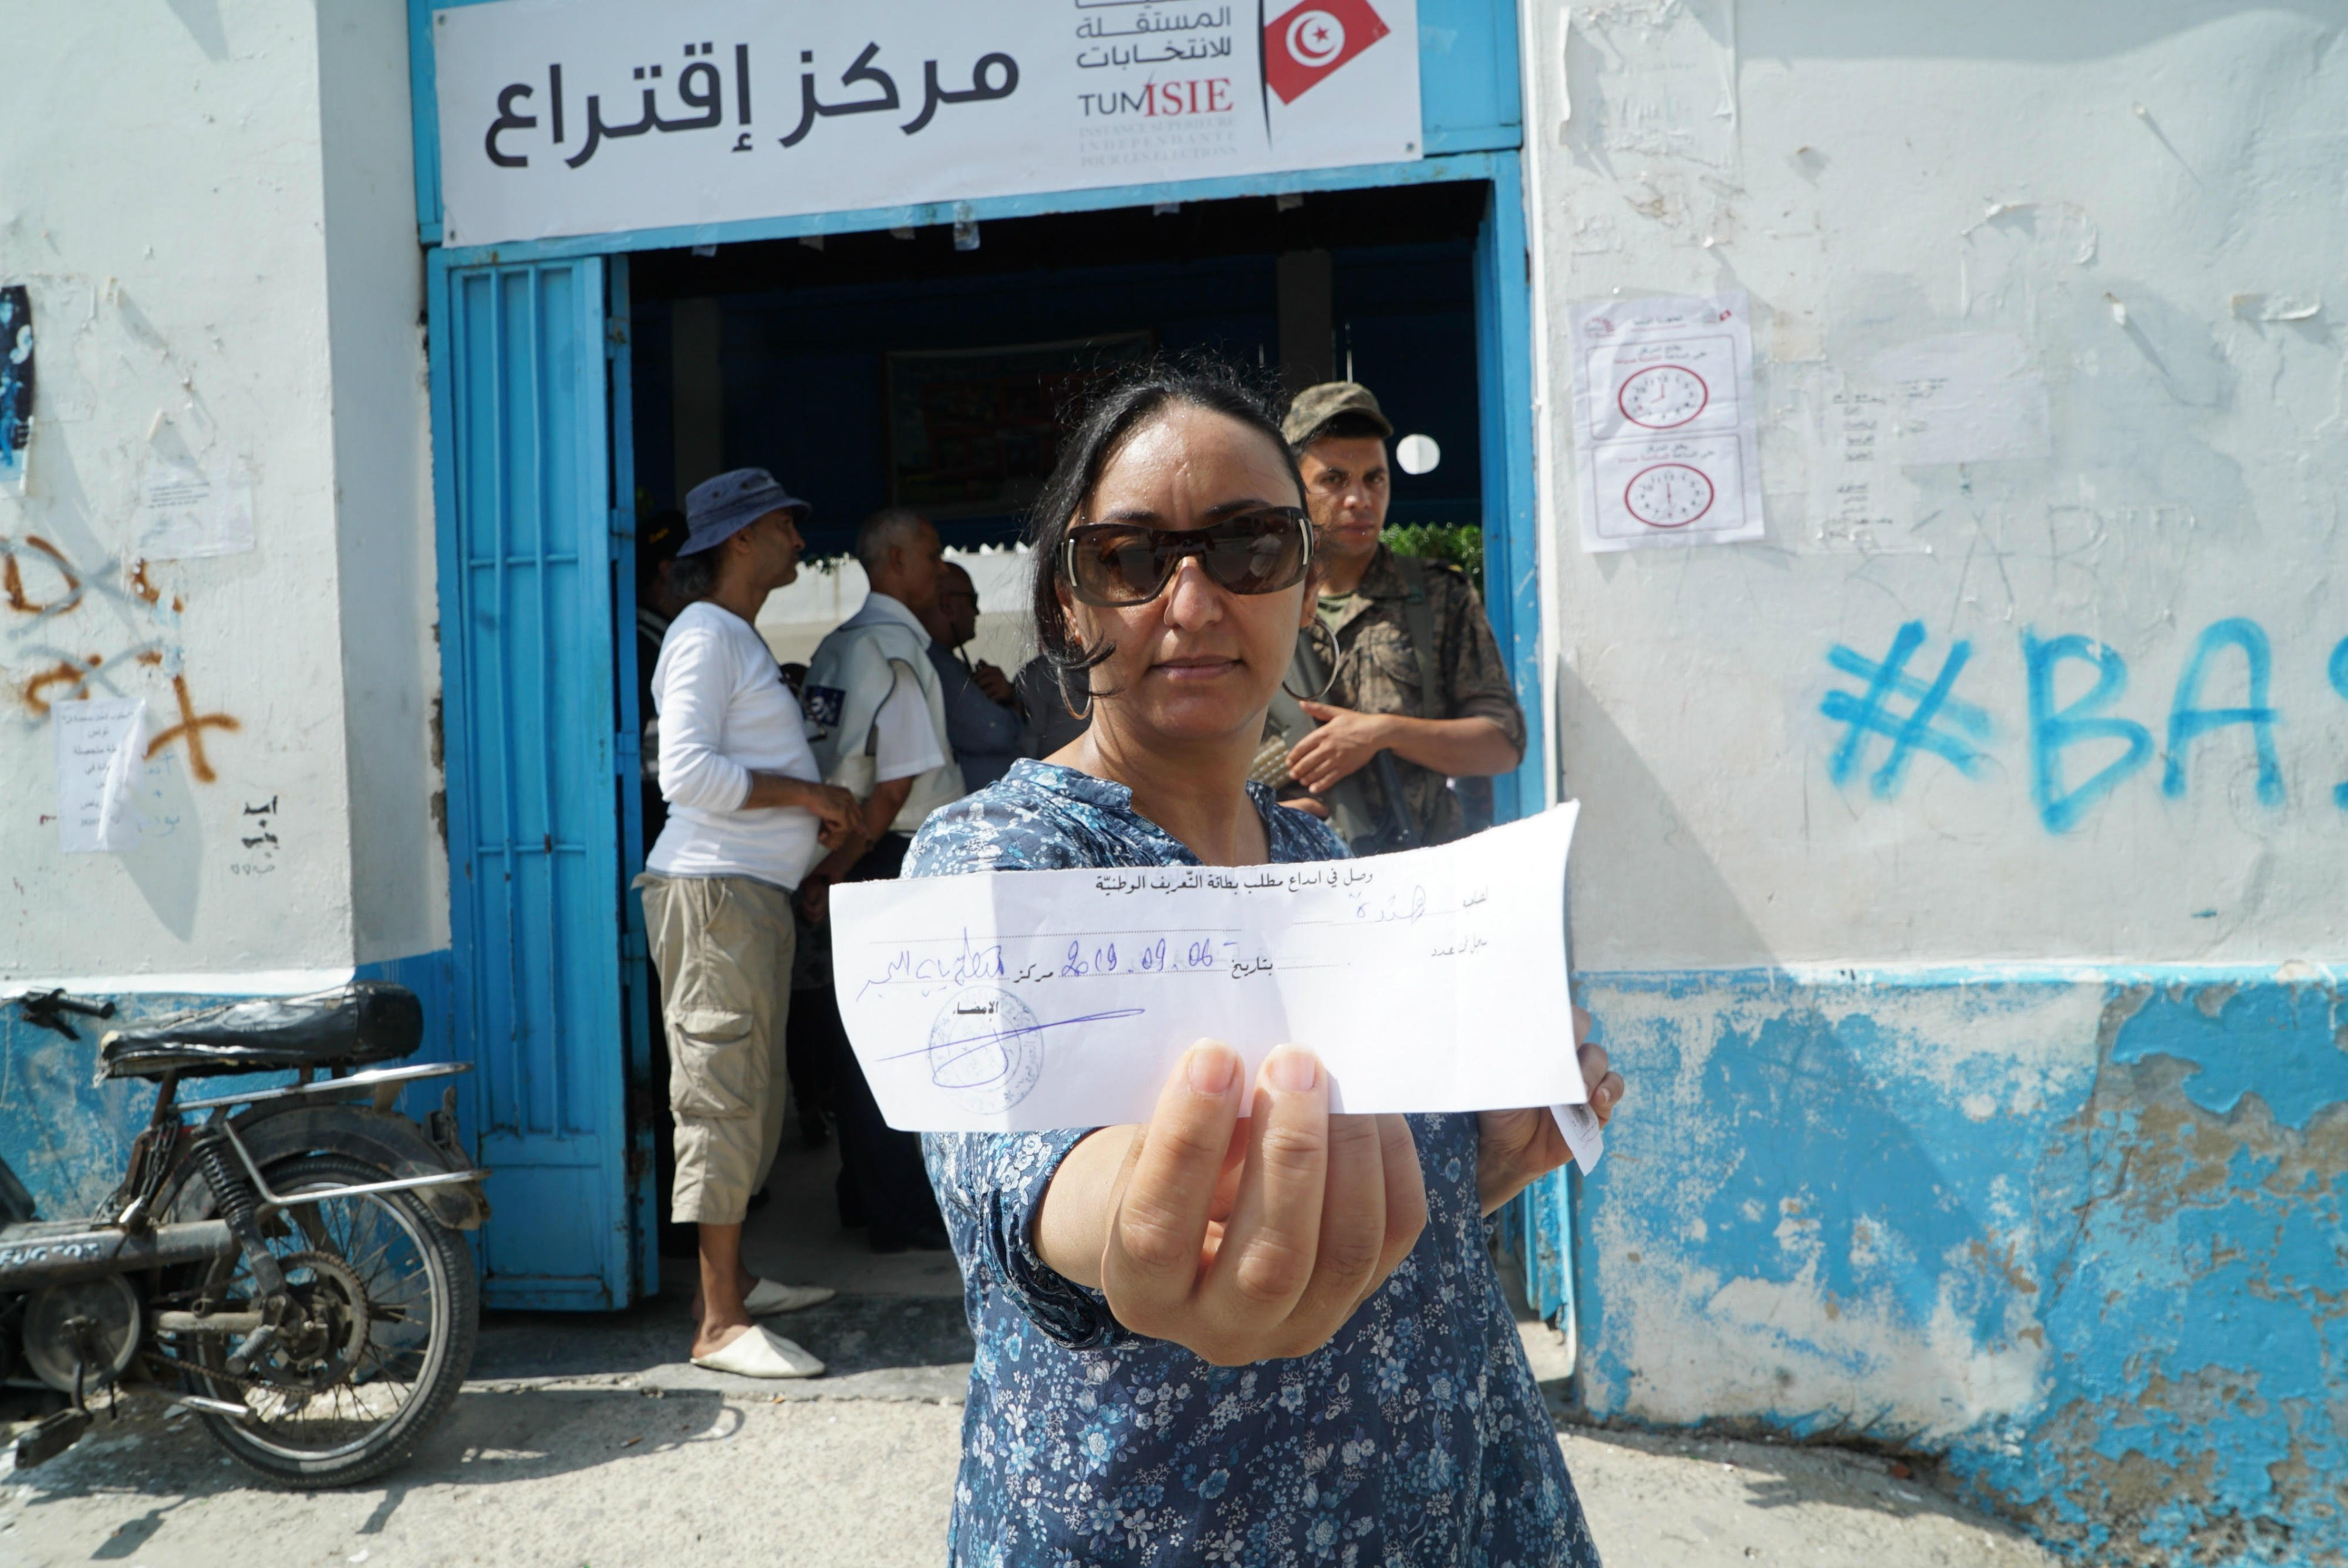 Some people have been prevented from voting on the grounds that they did not have the right identification documents (MEE/Faisal Edroos)